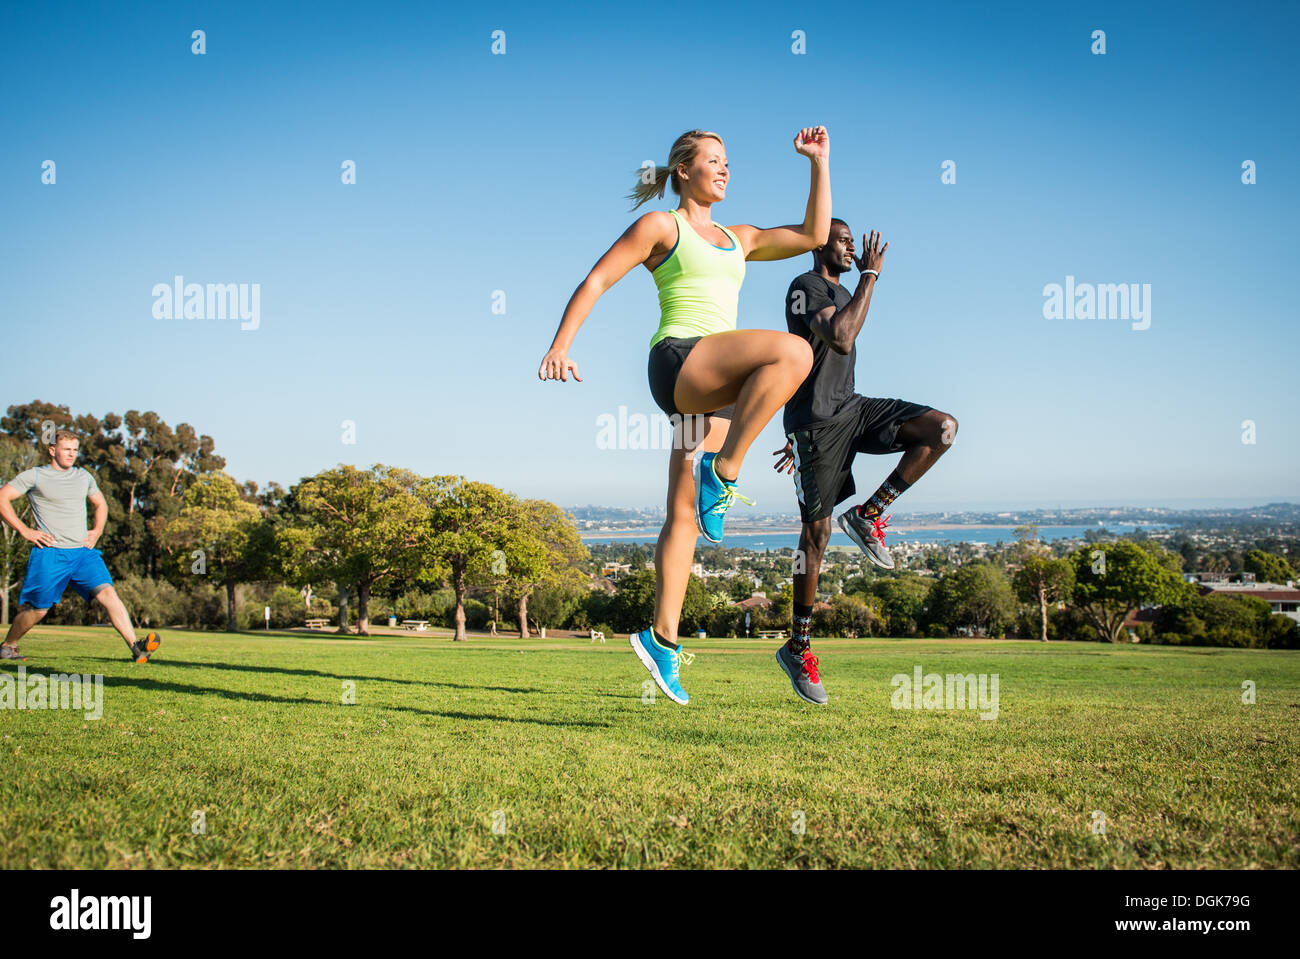 Small group of young adults training in field - Stock Image